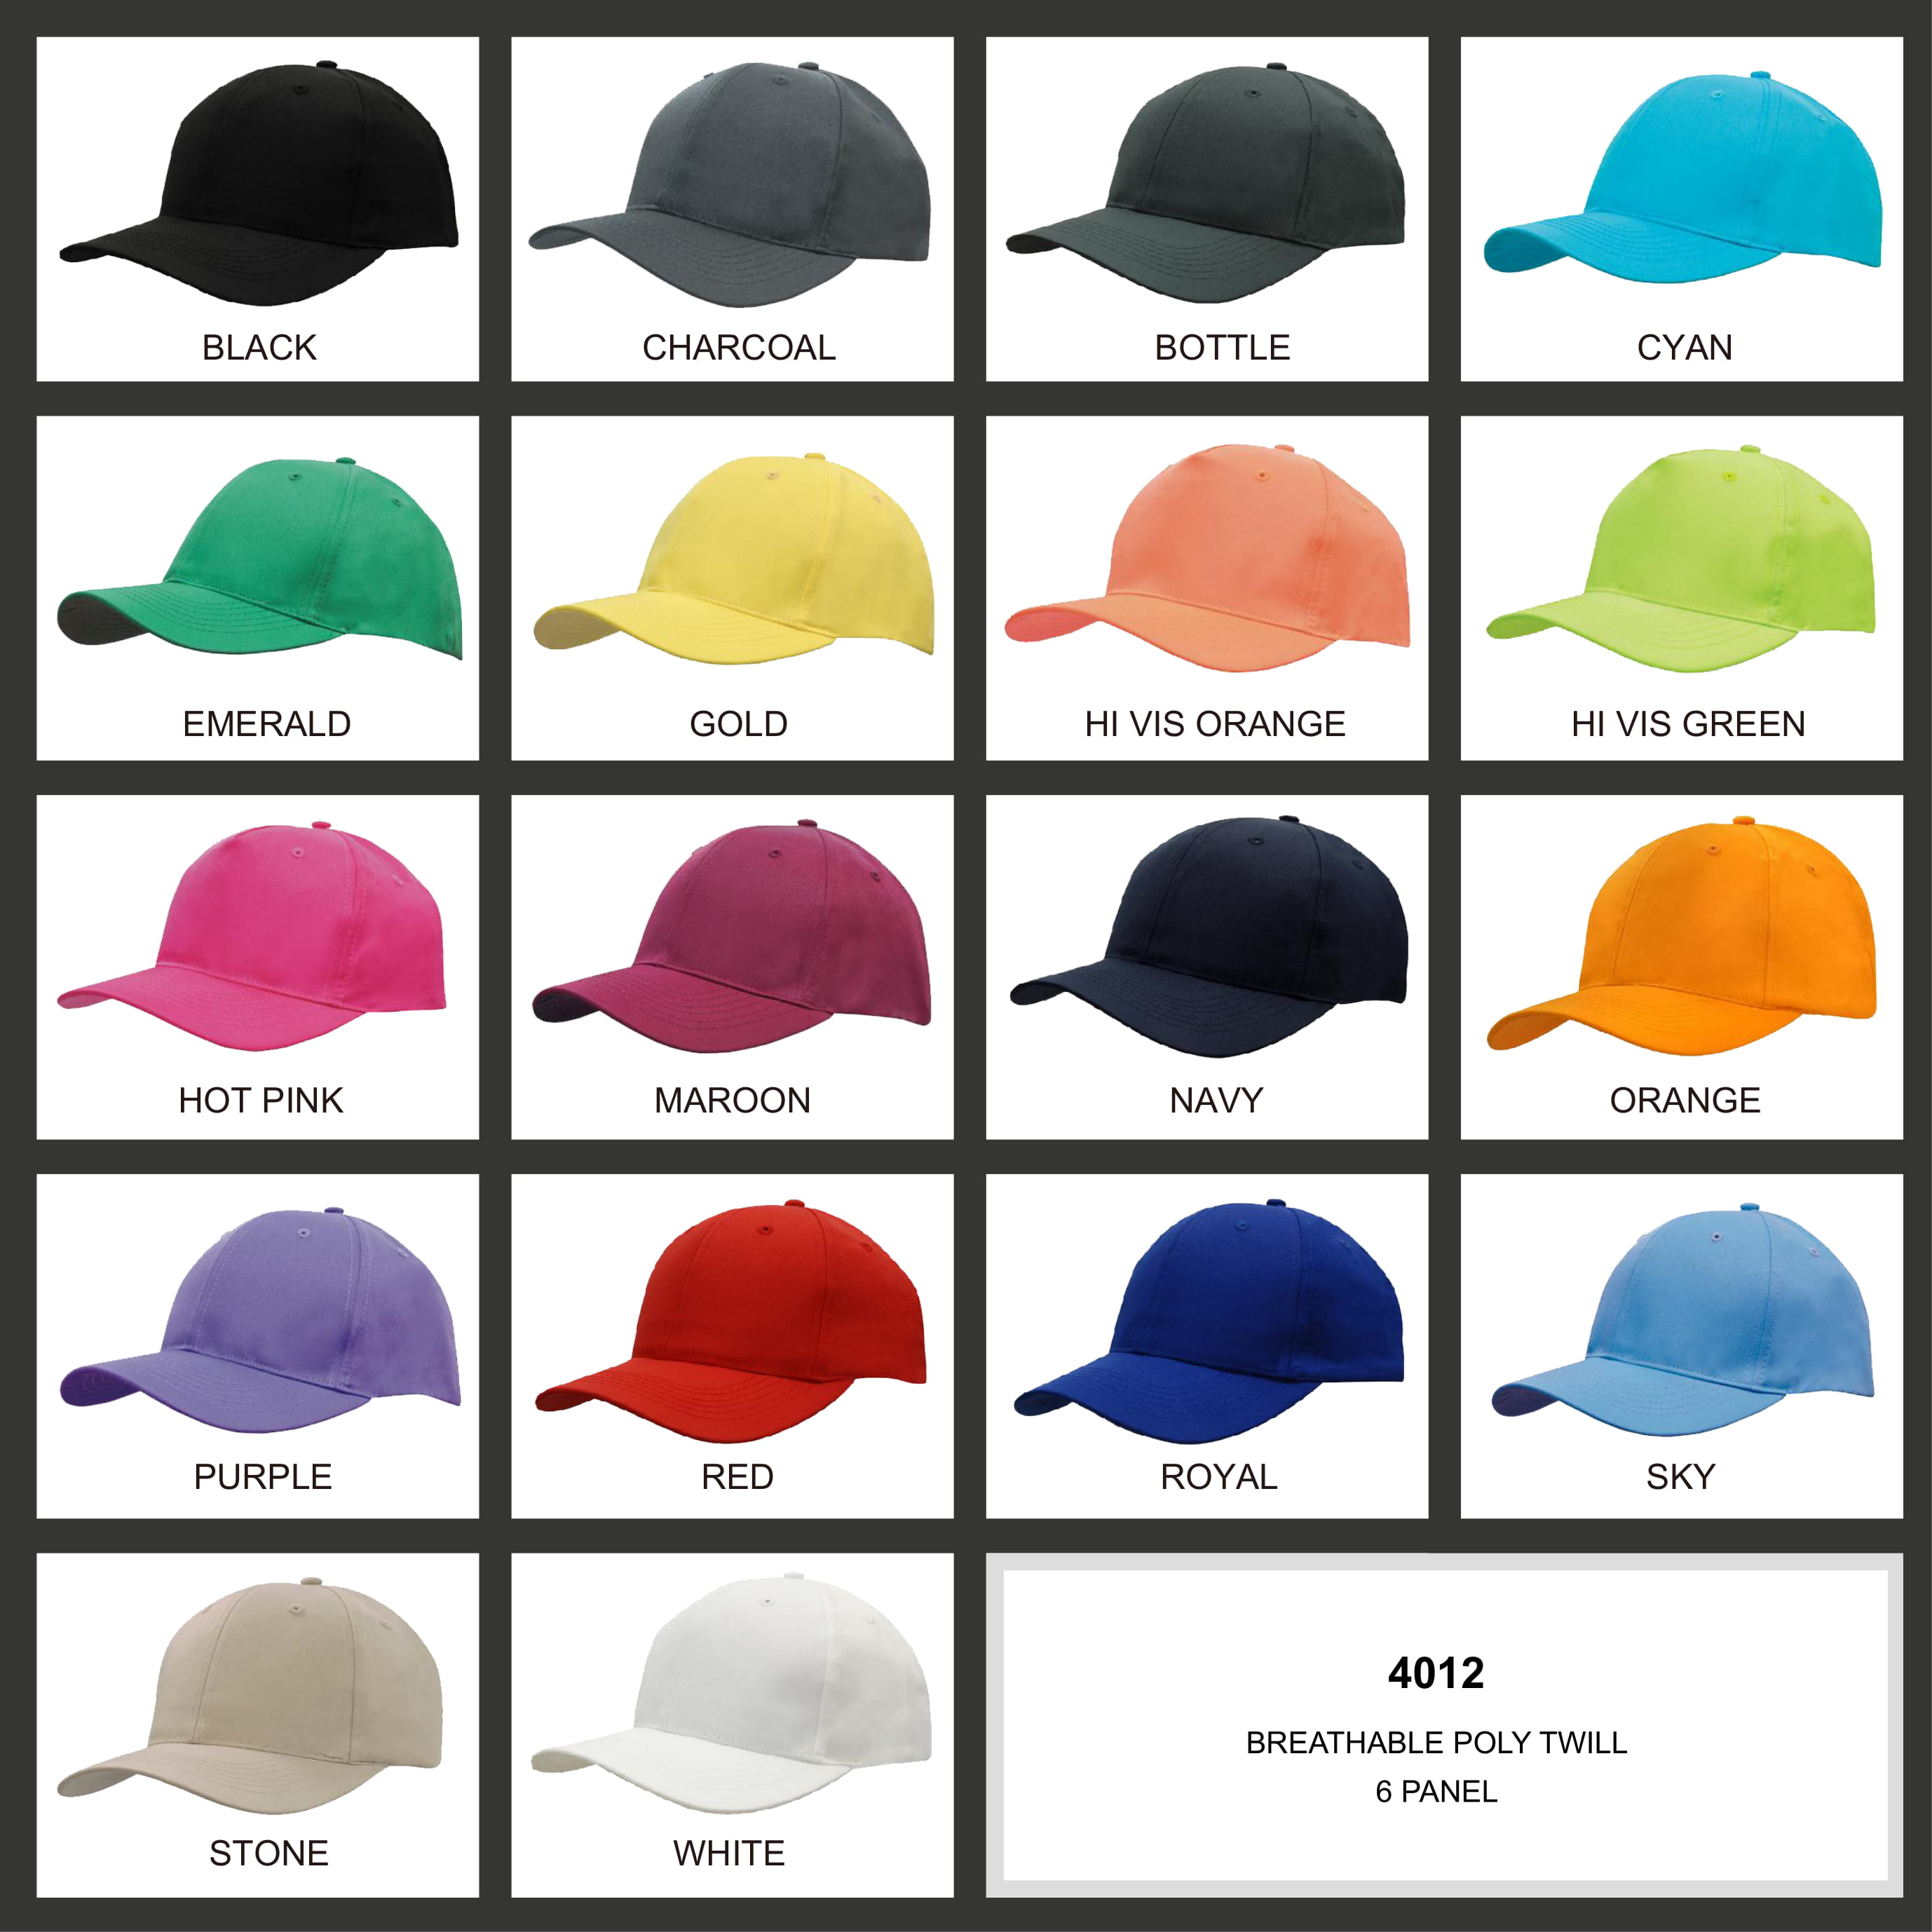 Breathable Poly Twill Cap (4012) 2 | | Promotion Wear